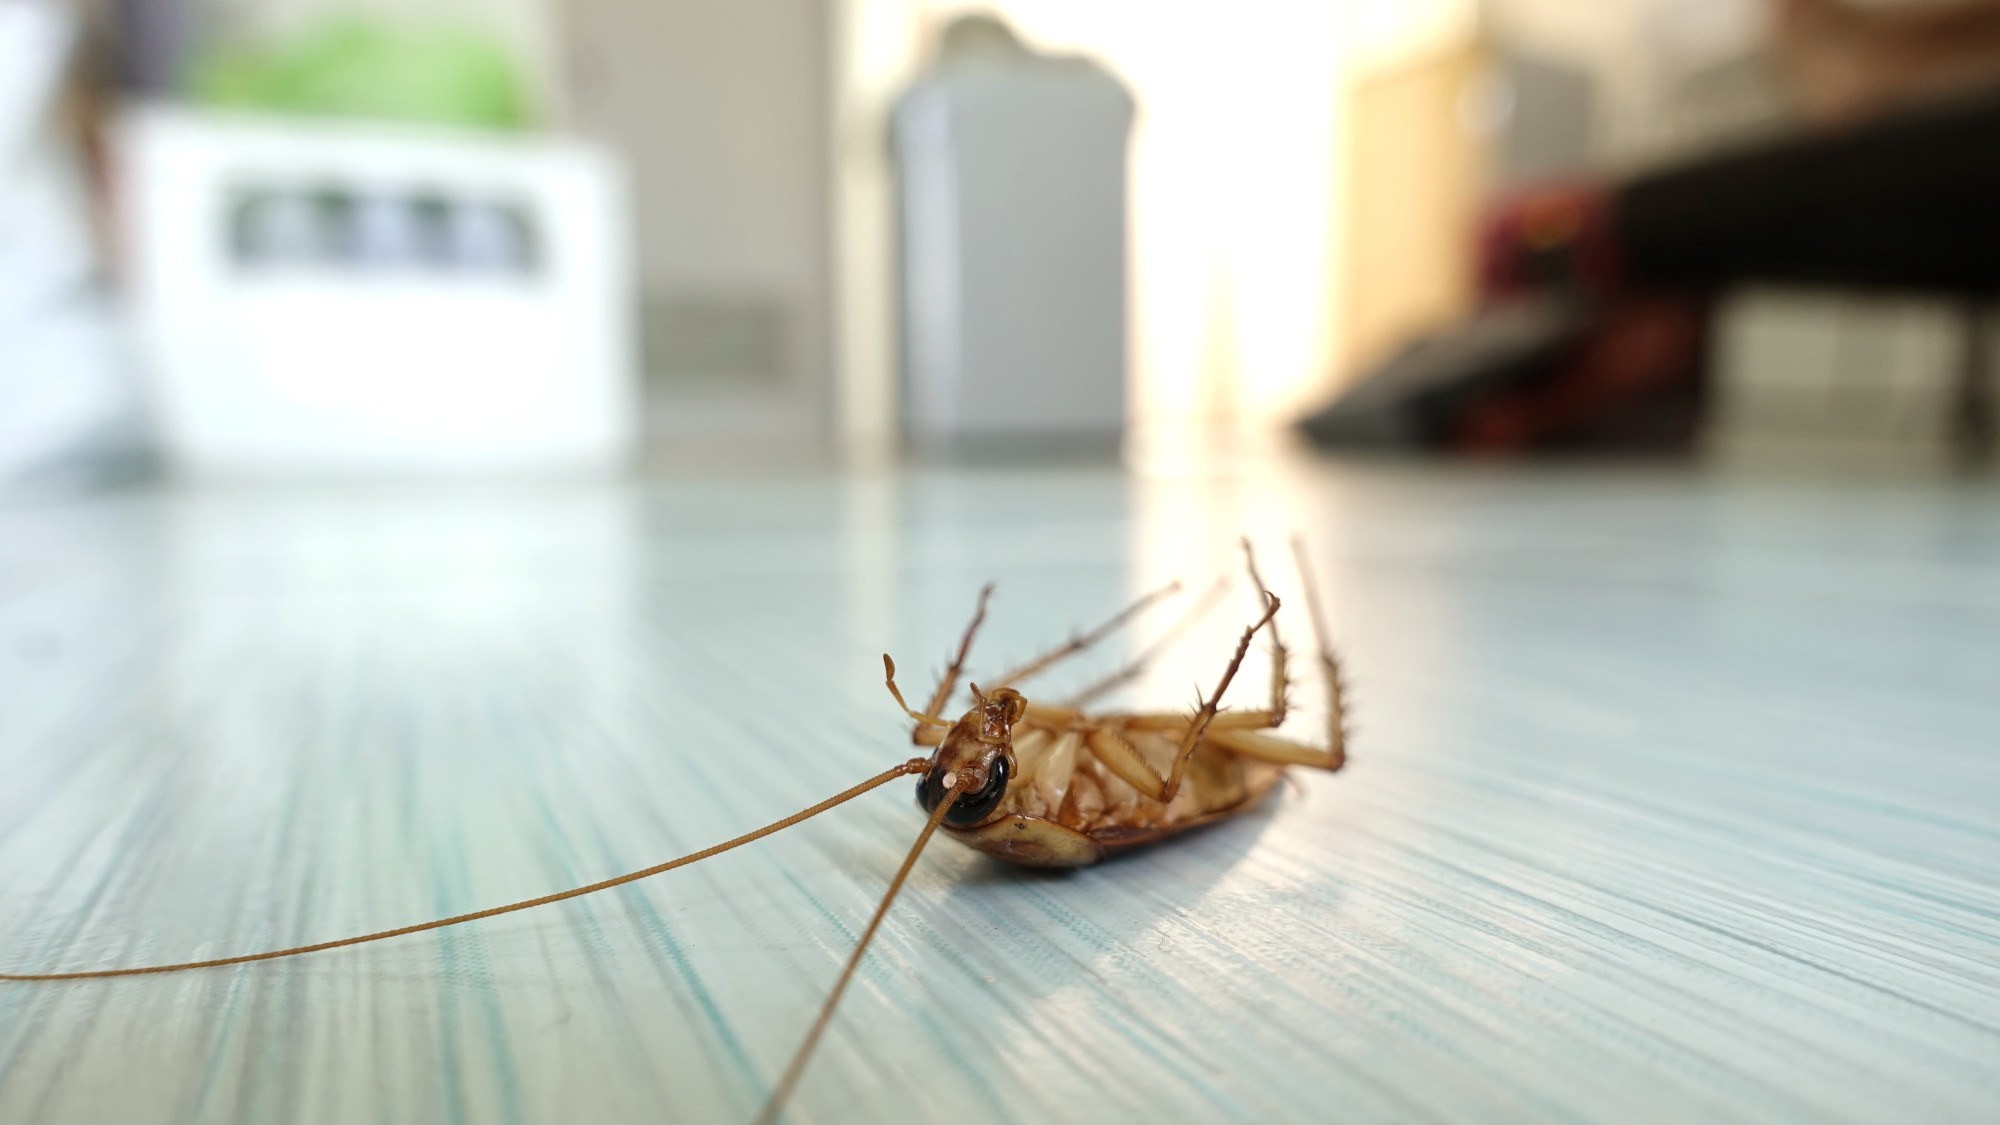 10 Home Pests and Signs You Might Have Them